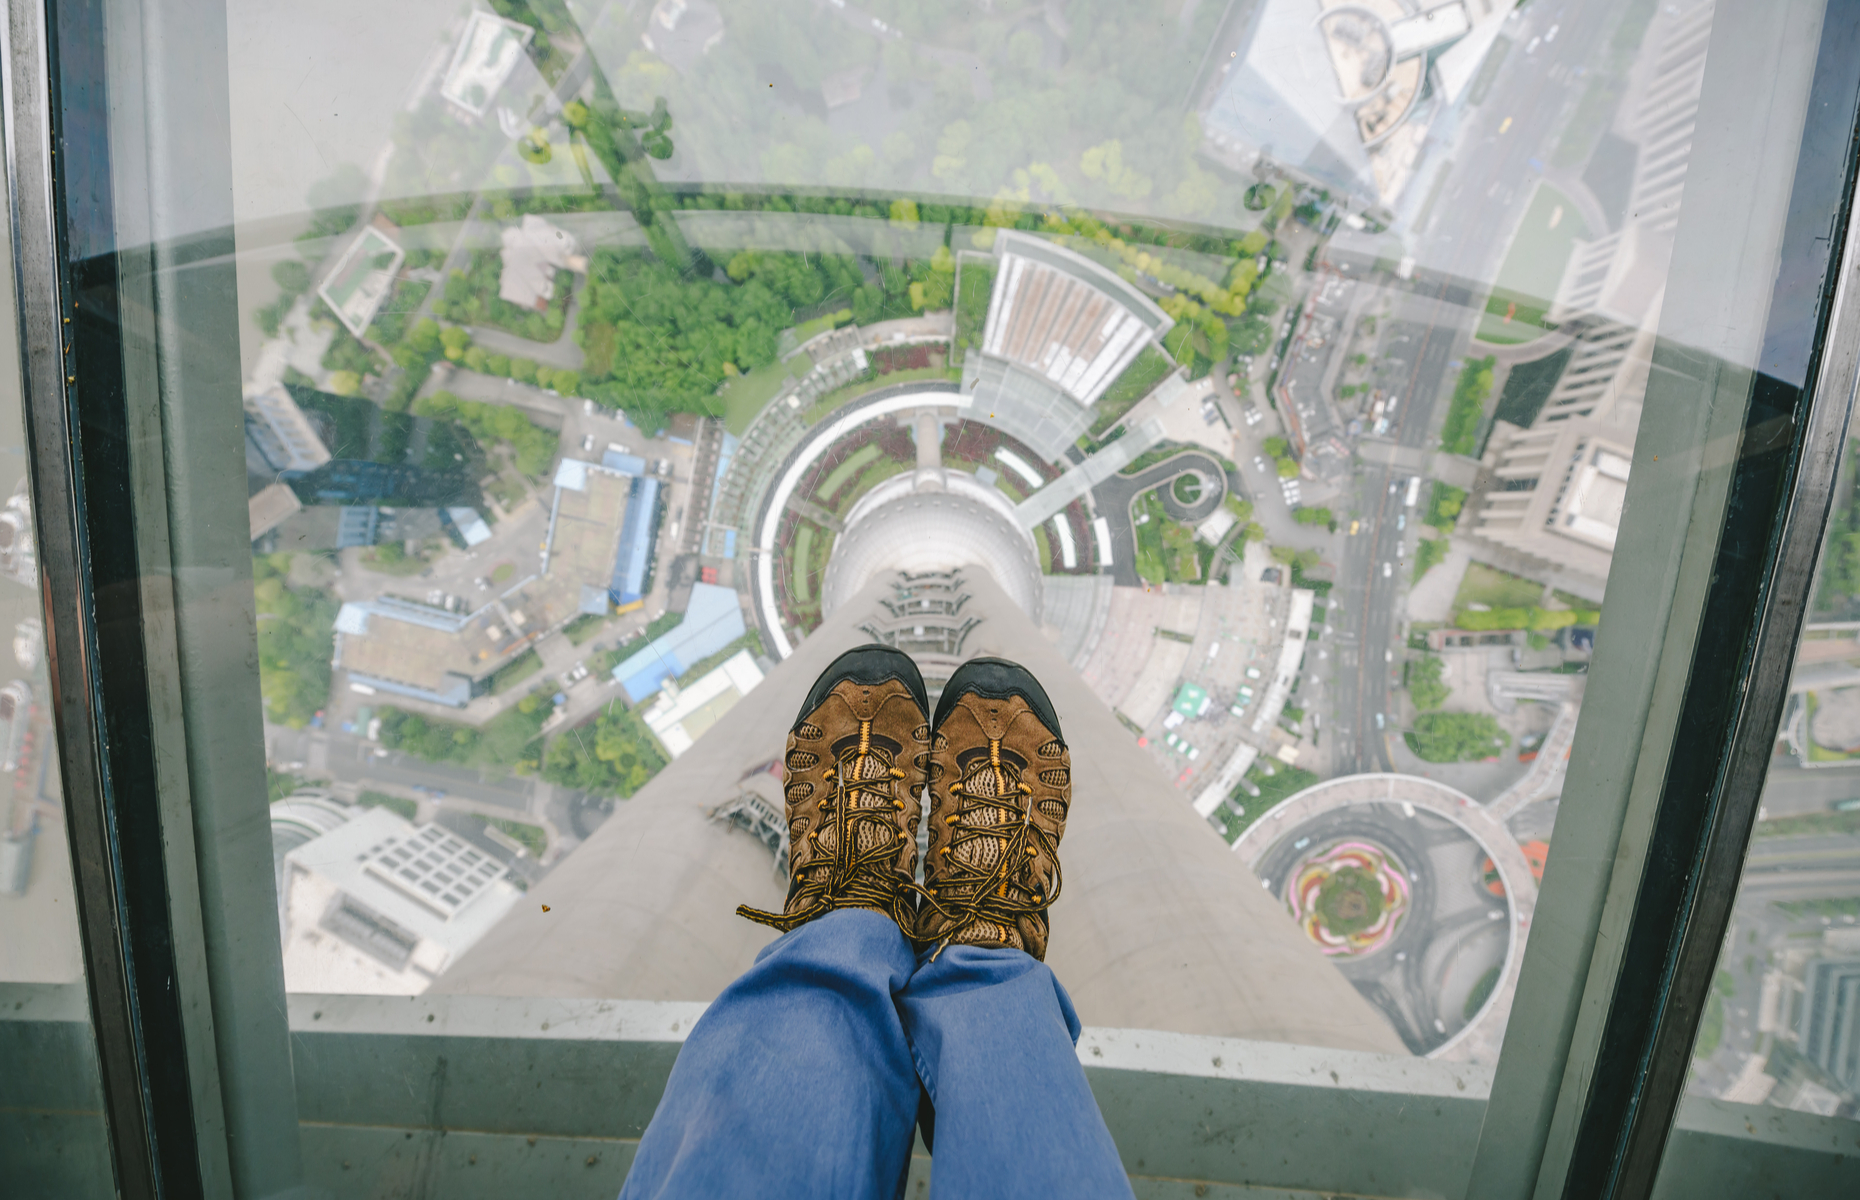 Slide 6 of 16: At the Oriental Pearl Tower, a radio and TV tower in Shanghai, the public can visit two observation decks at heights of 263 and 350 metres (863 and 1,148 feet) and dine in a revolving restaurant perched 267 metres (876 feet) above ground. There is a glass floor at the highest observation deck.